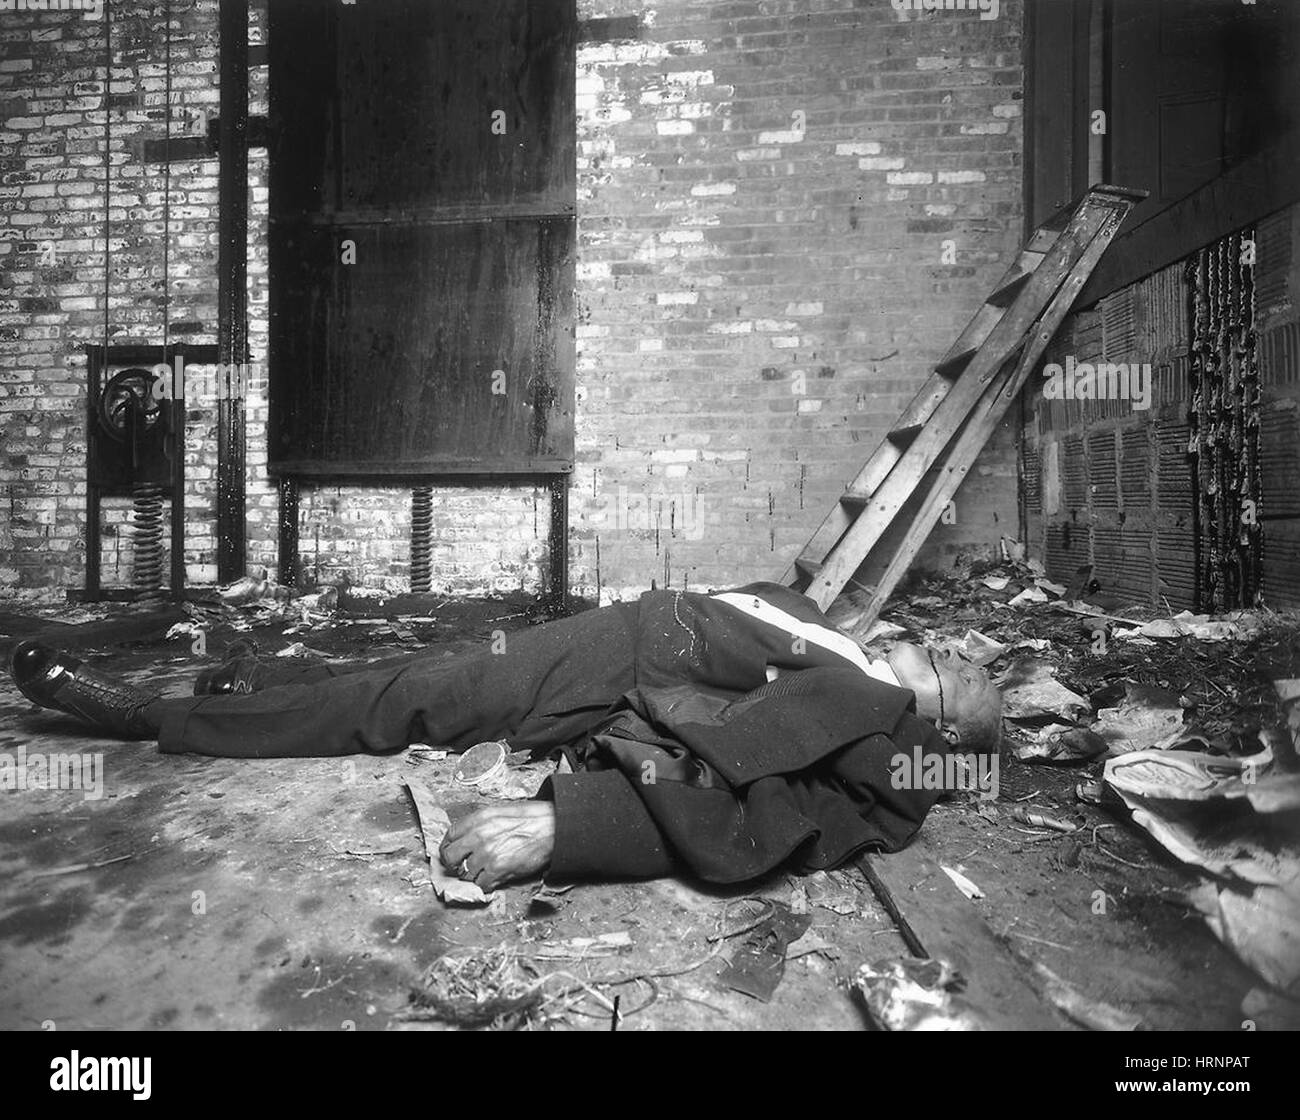 Crime Scene, NYC, Early 20th Century - Stock Image